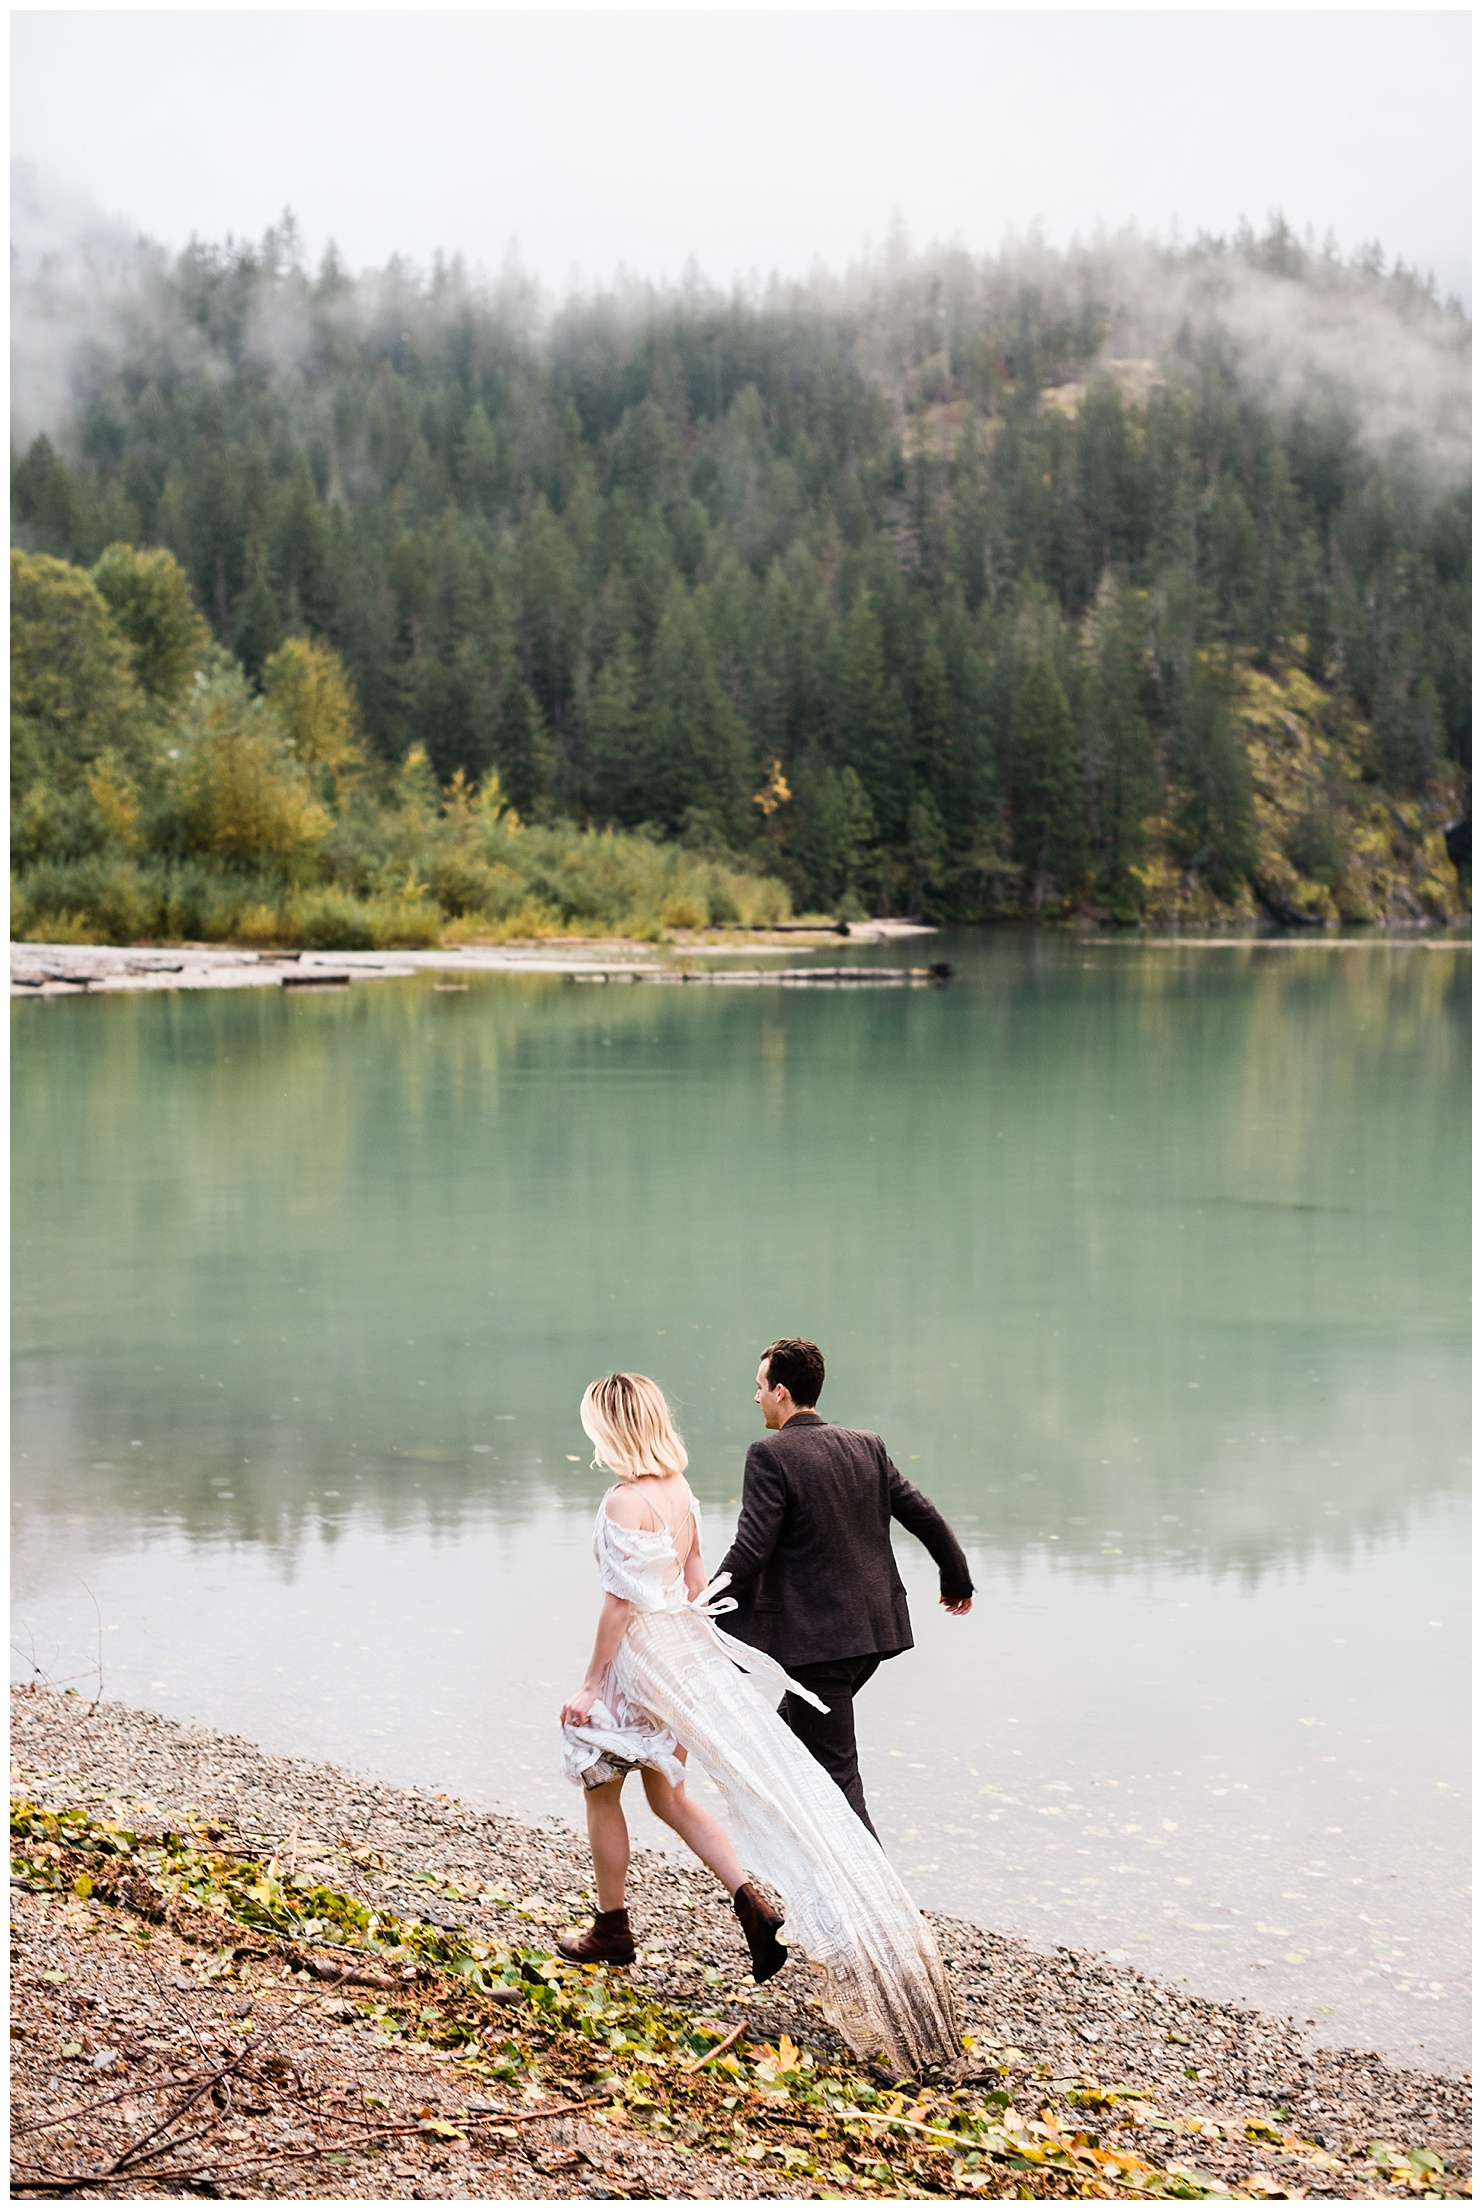 Diablo Lake Bridal Session by Forthright Photo, pnw elopement photographer